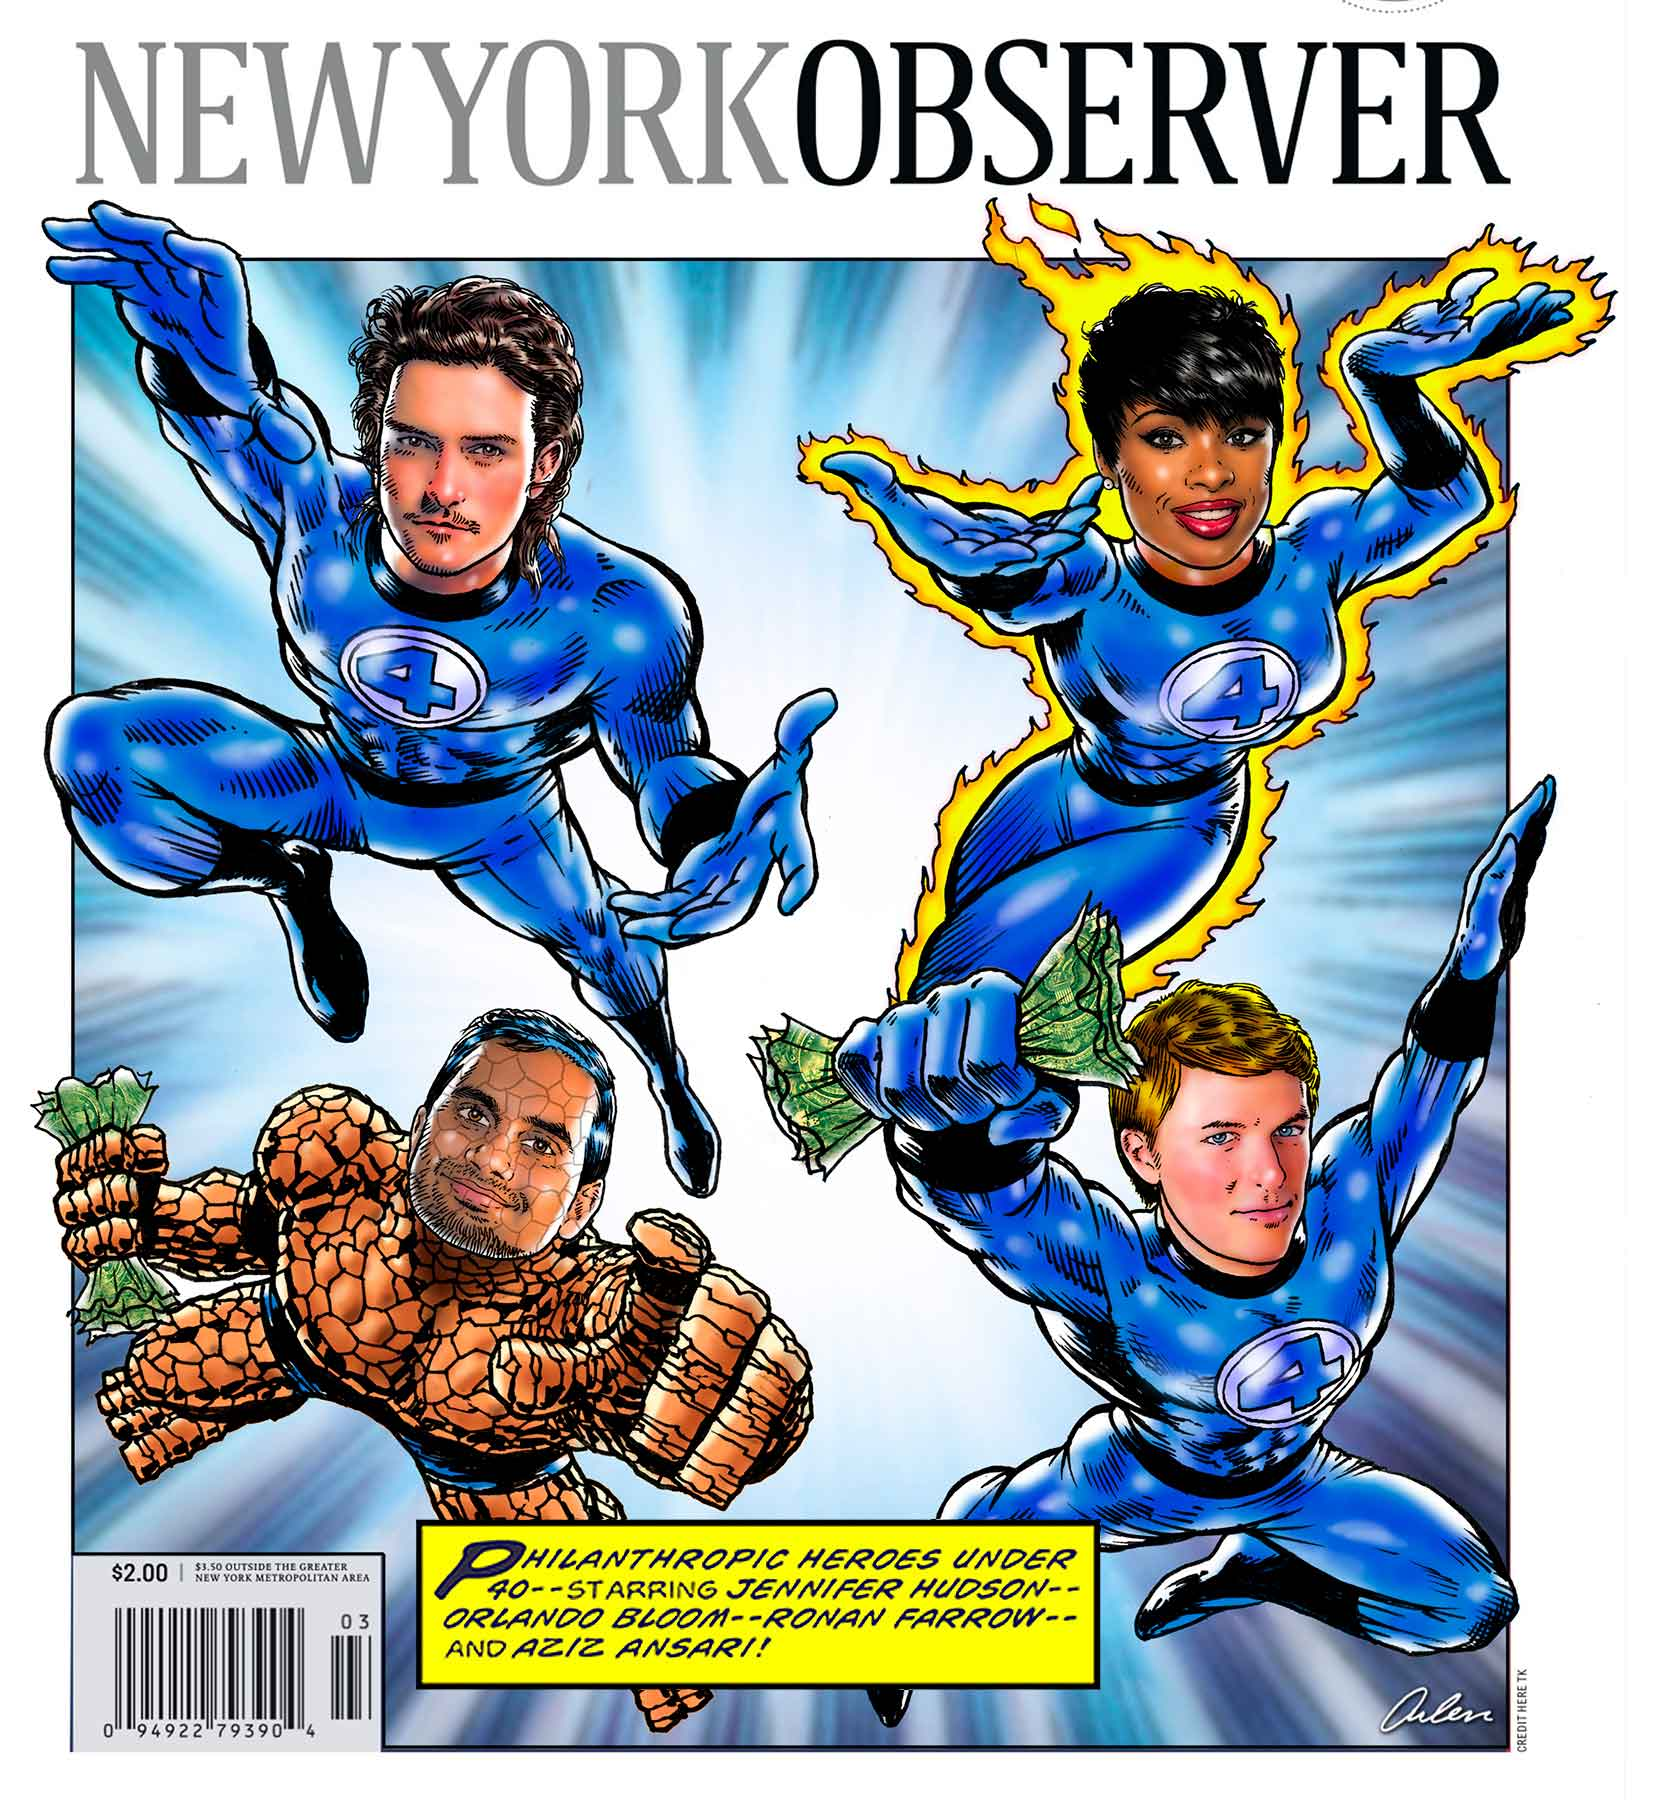 Arlen Schumer / New York Observer / Front Page / Paul Dilakian, AD